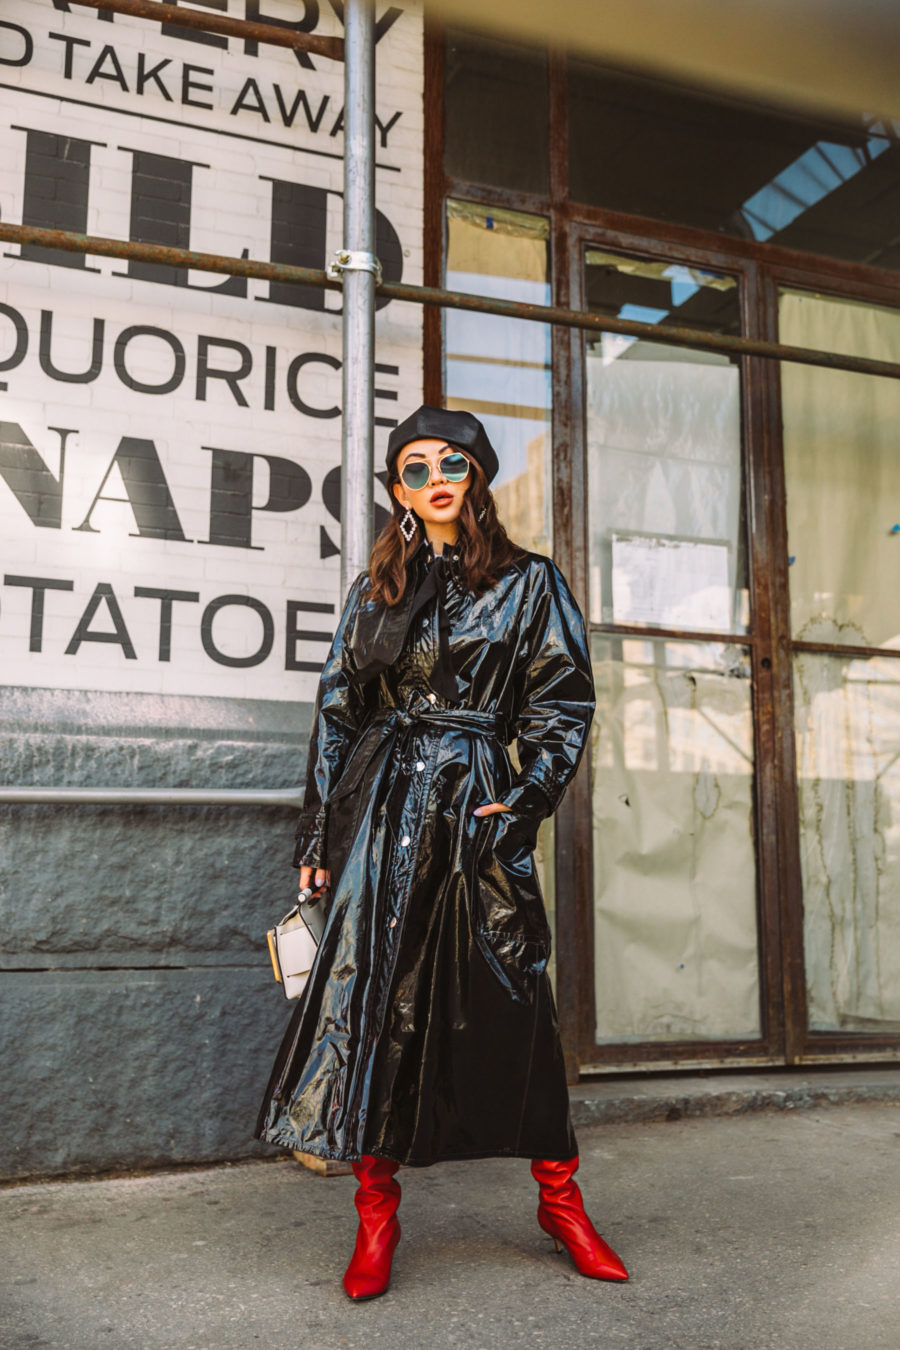 What to wear with knee high boots isabel marant vinyl trench coat, paul andrew boots, fendi sunglasses, boyy handbag, knee high boots, NYFW AW18 street style // Notjessfashion.com